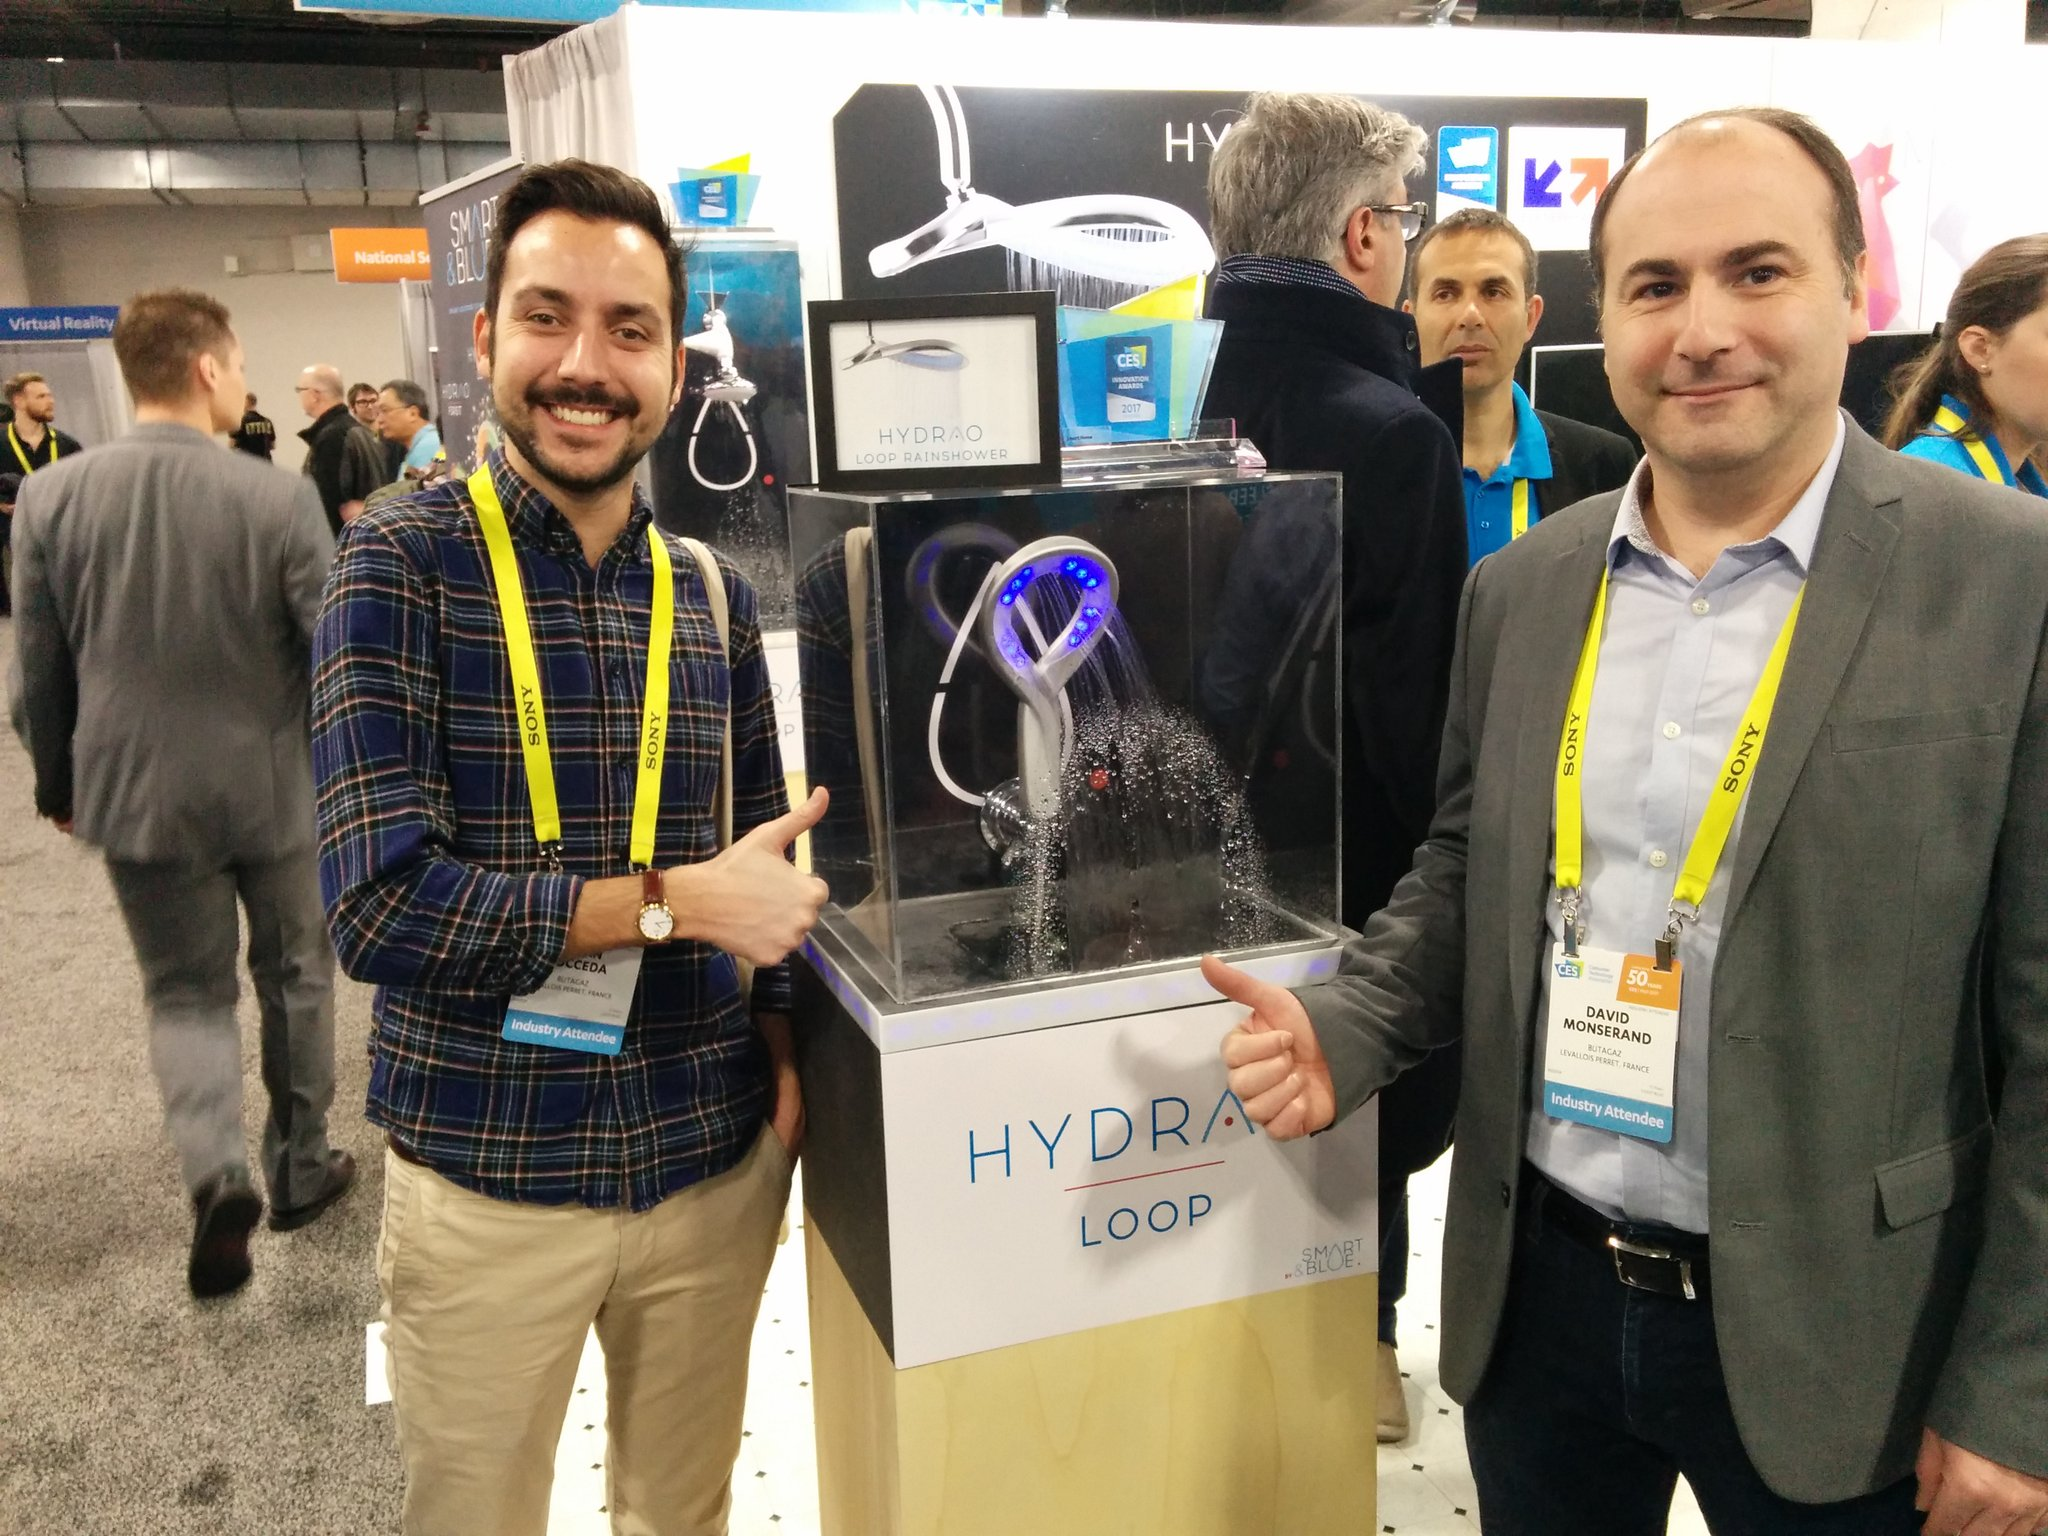 .@Zagatub fan de @Hydrao_ #CES2017 @Minalogic @BigBoosterOrg @DigitalGrenoble @ccigrenoble https://t.co/ewWgCGd5VO